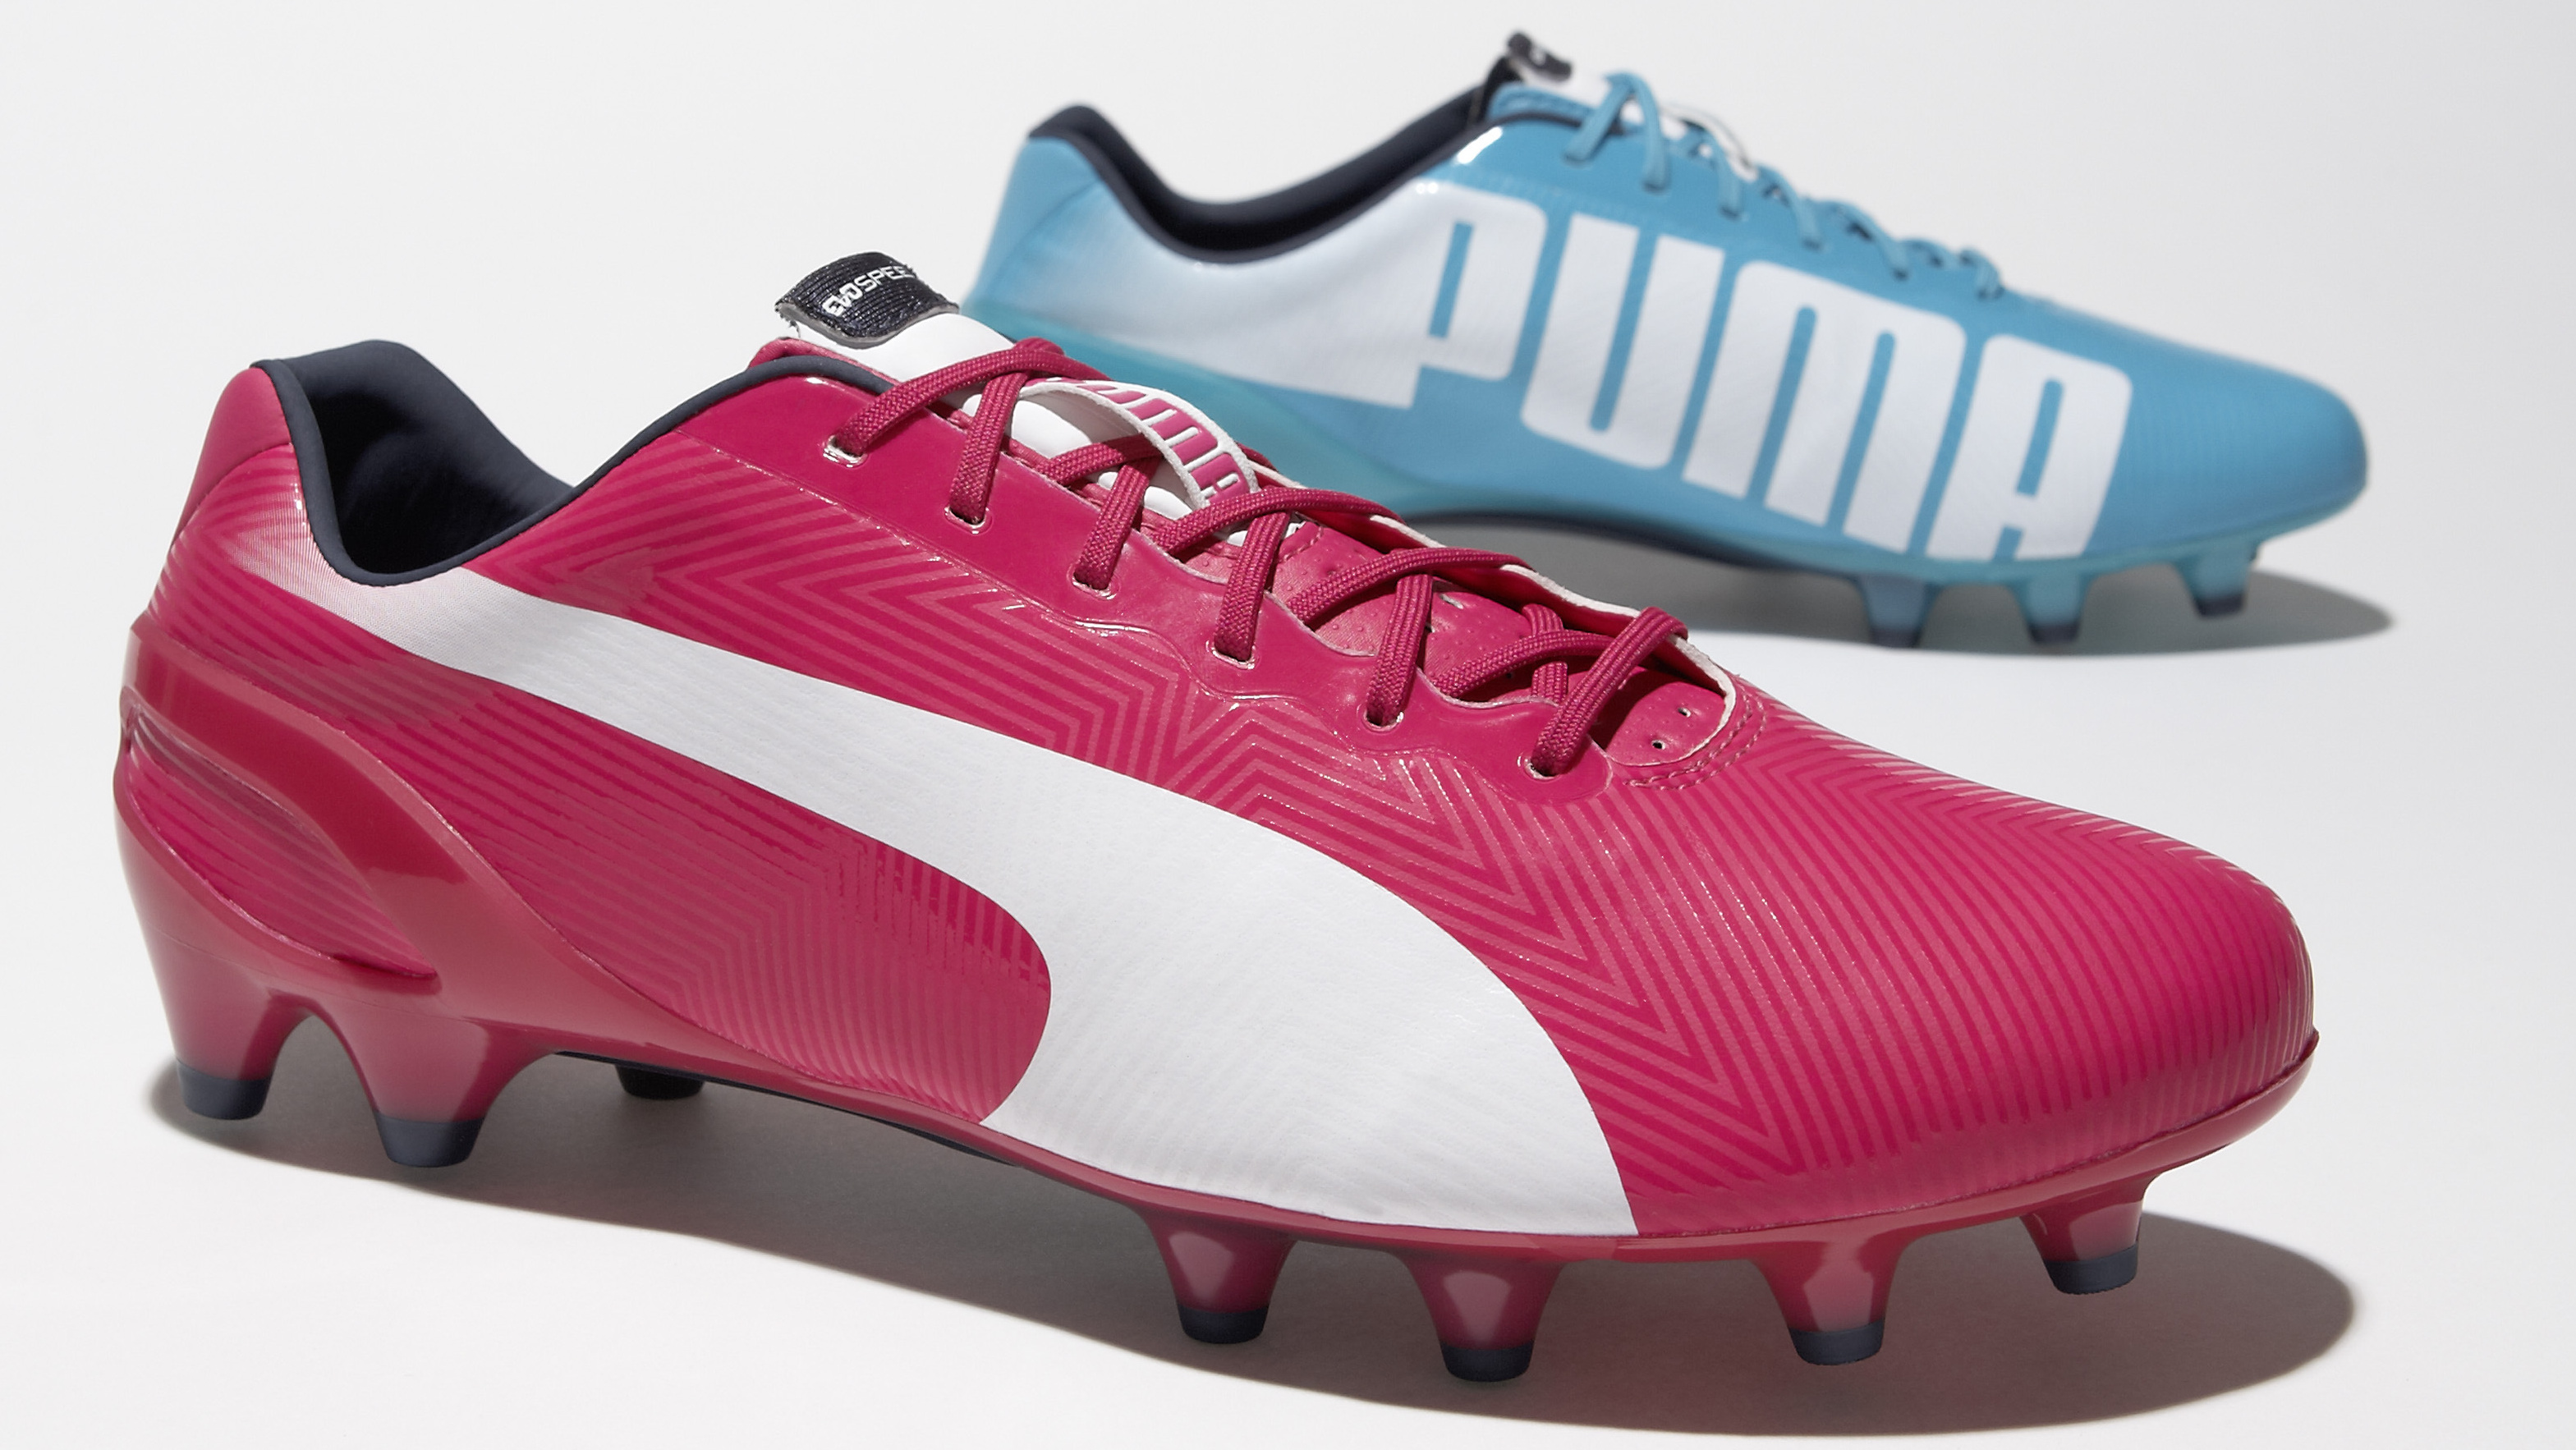 esquema loto Arena  pink and blue puma shoes,Free Shipping,Safe Payment